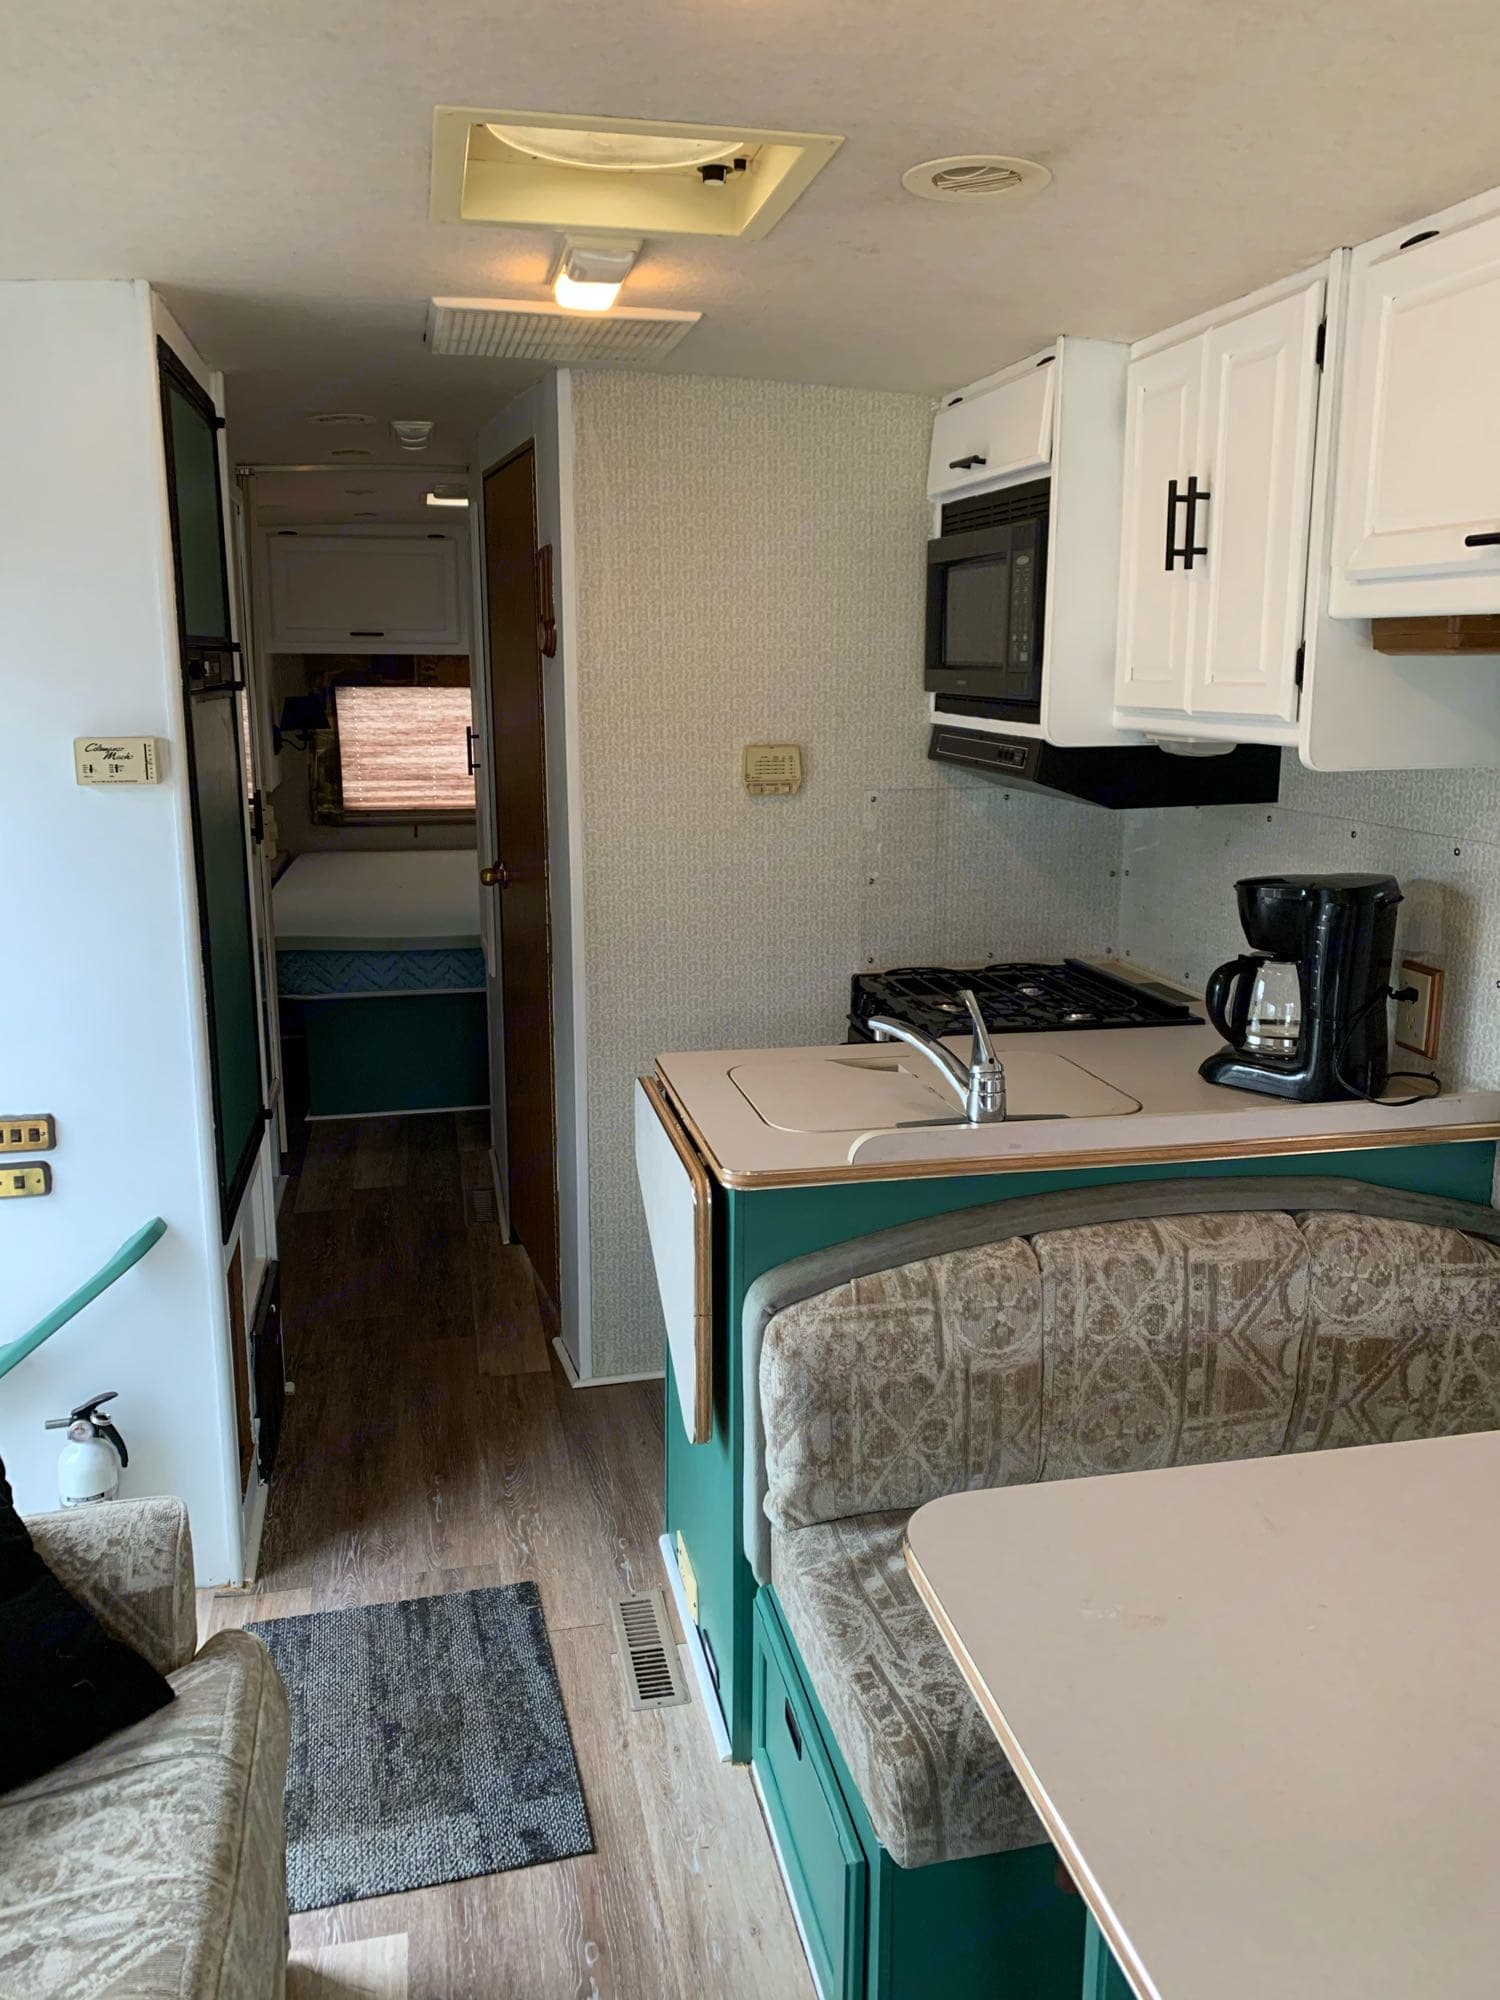 kitchen comes equipped with microwave, propane powered stove and oven, sink and coffee pot. Winnebago Brave 1998